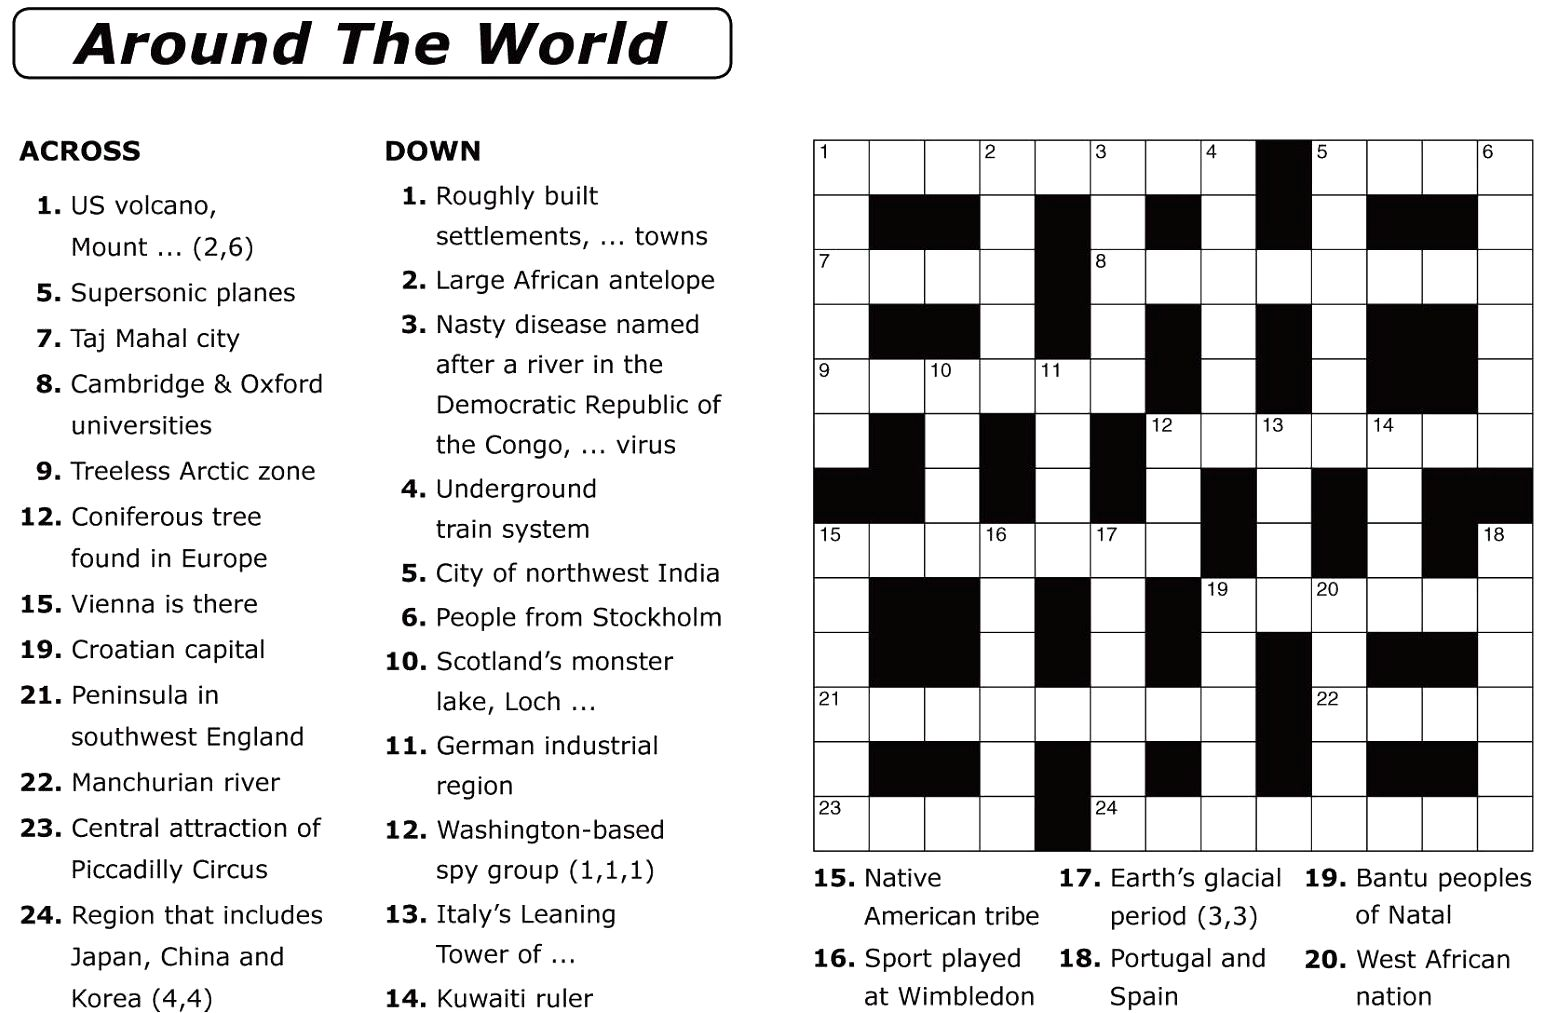 image regarding Bible Crossword Puzzles Printable With Answers identify Straightforward Crossword Puzzles Printable Each day Template